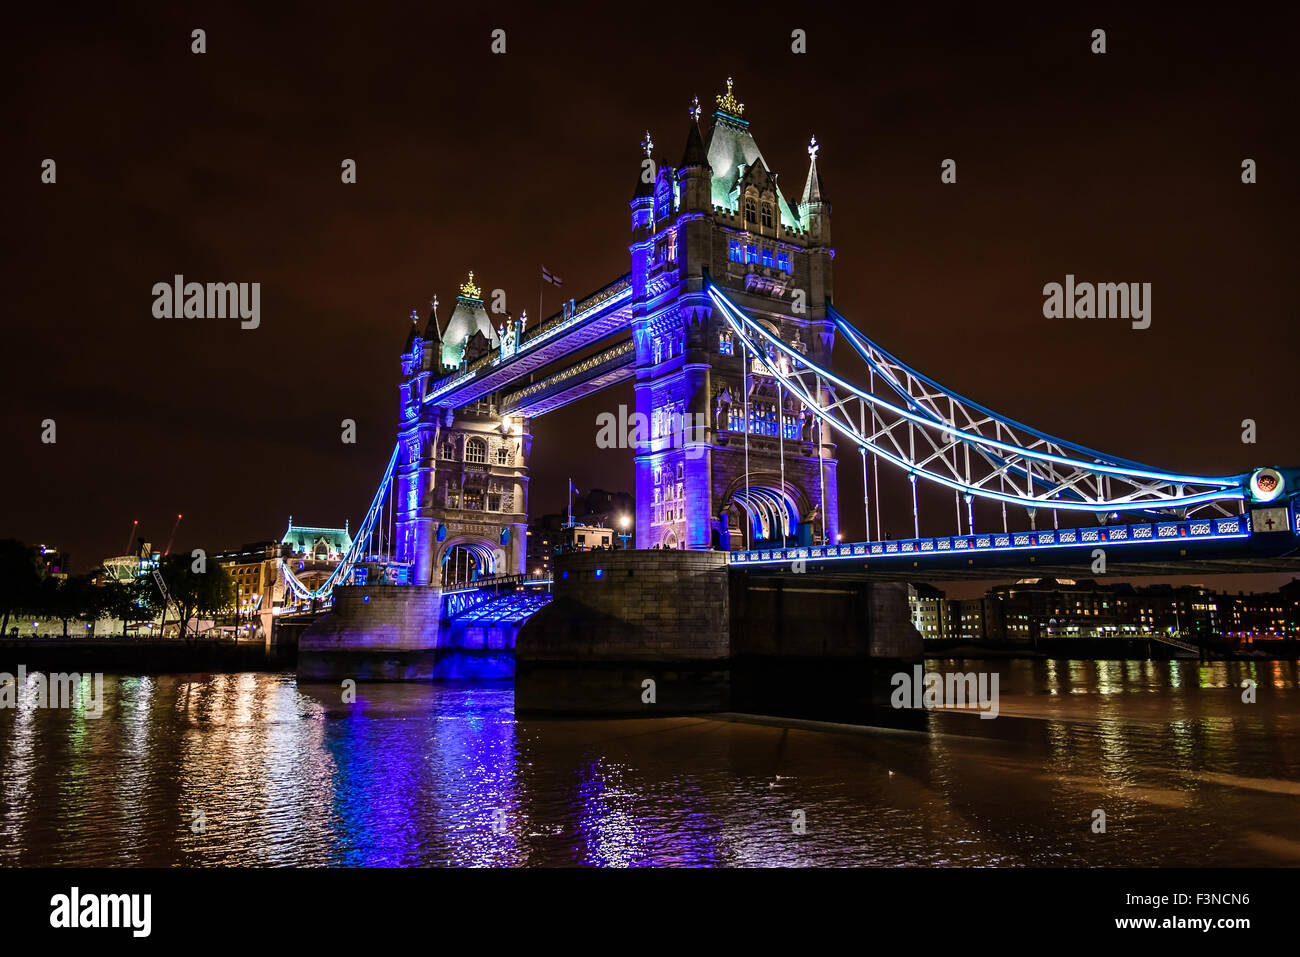 view of Tower Bridge over the River Thames at night, London, UK, England - Stock Image